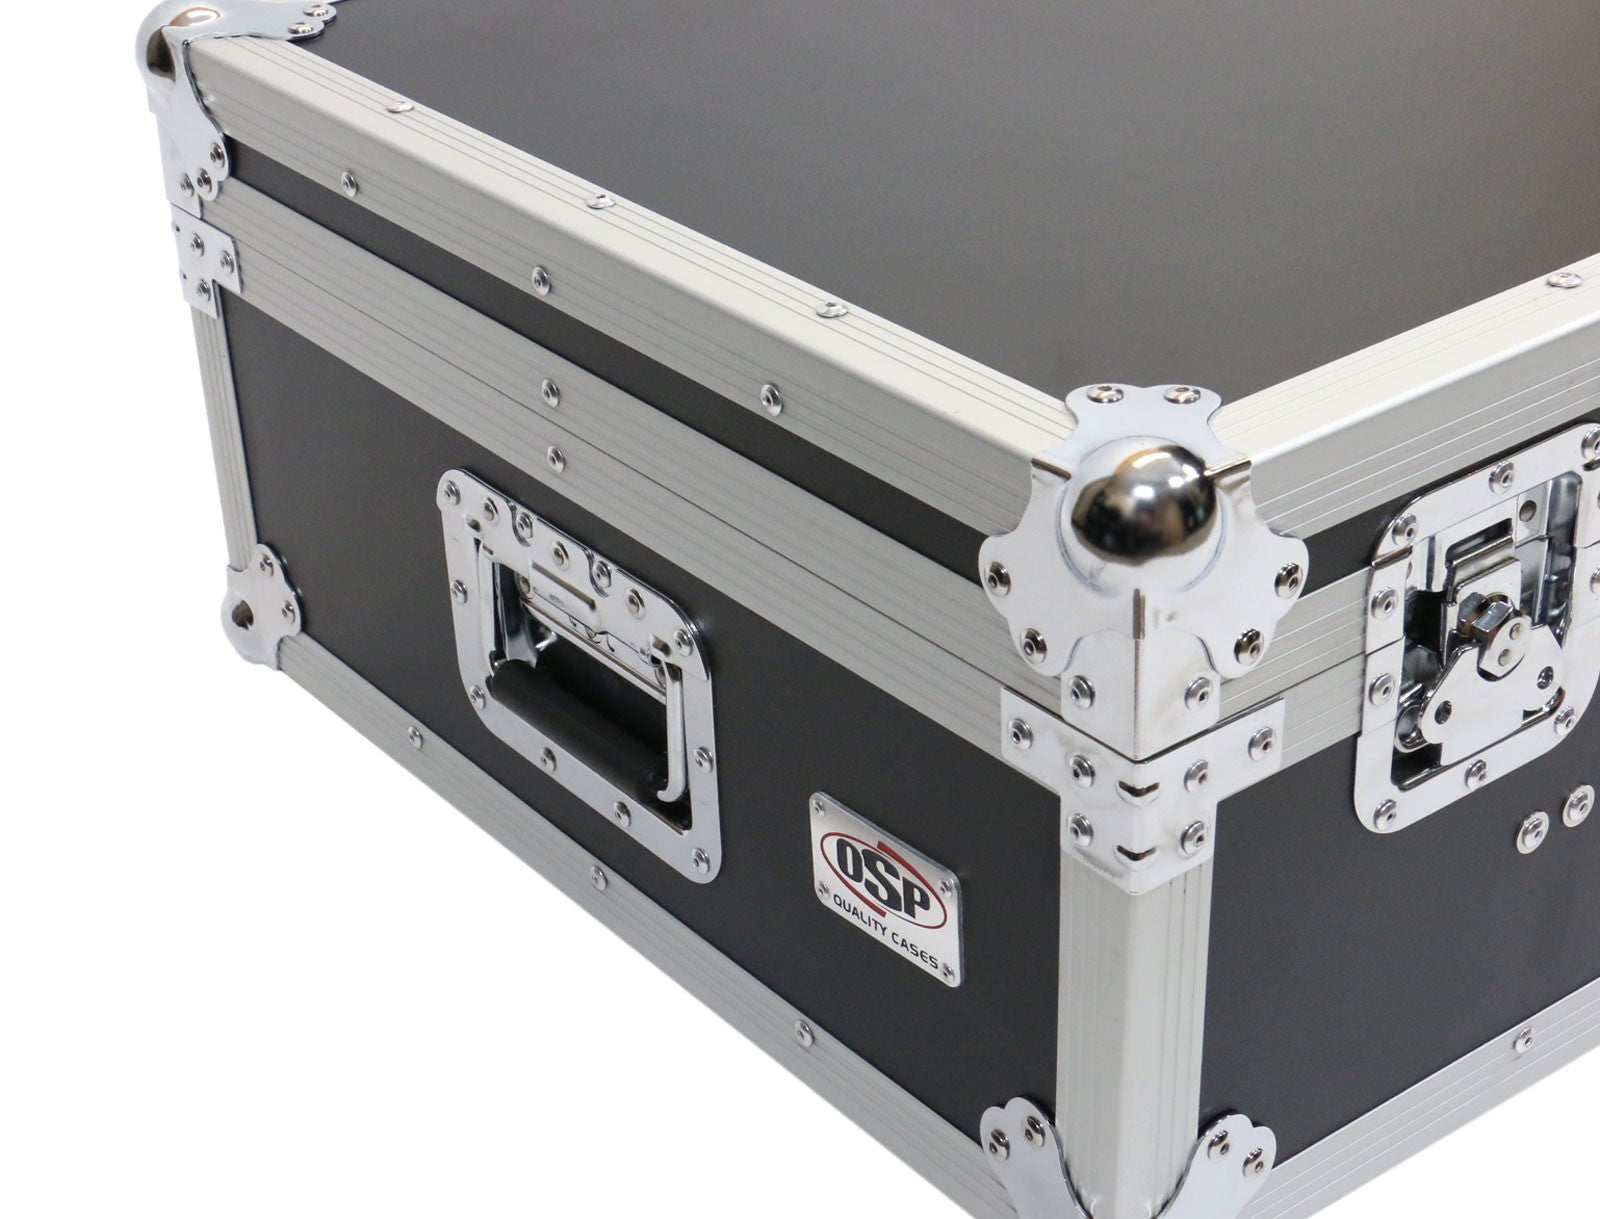 OSP ATA-HA88-WC Case with Recessed Casters for Nord Stage2 HA88, Stage EX88, Piano2 HA88, Piano 88